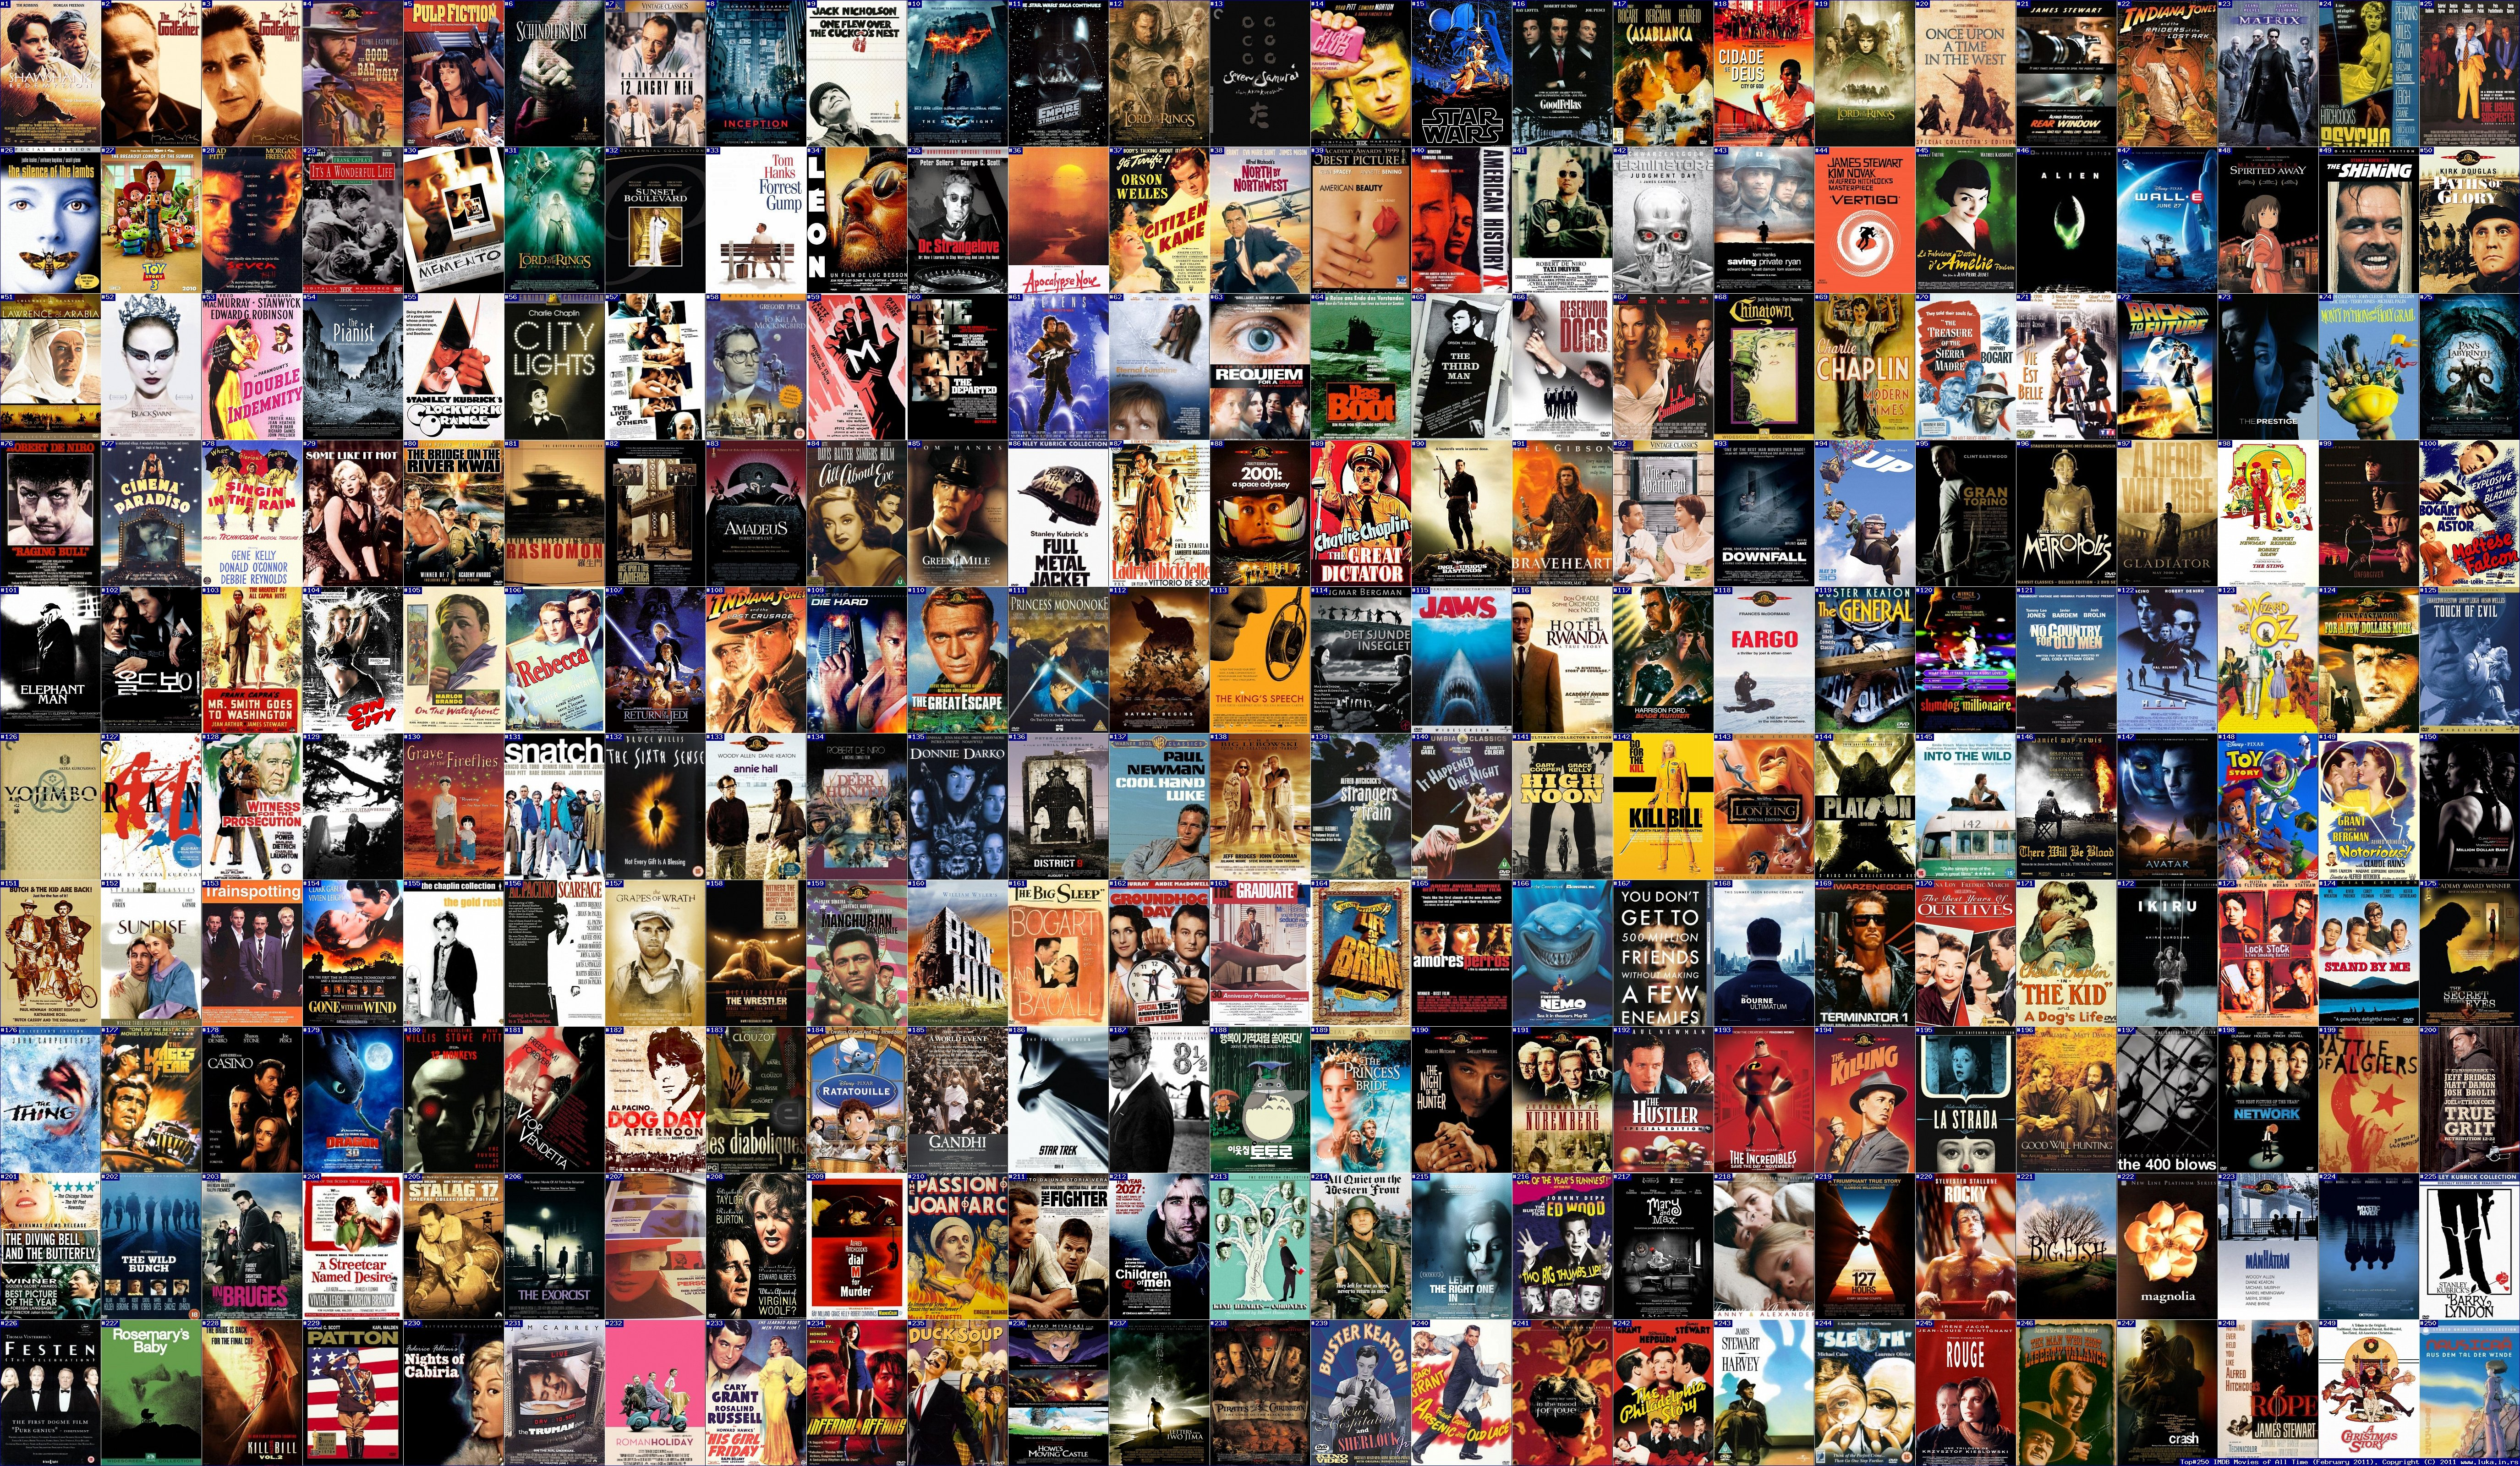 poster movie film movies posters wallpaper | 5500x3200 | 858715